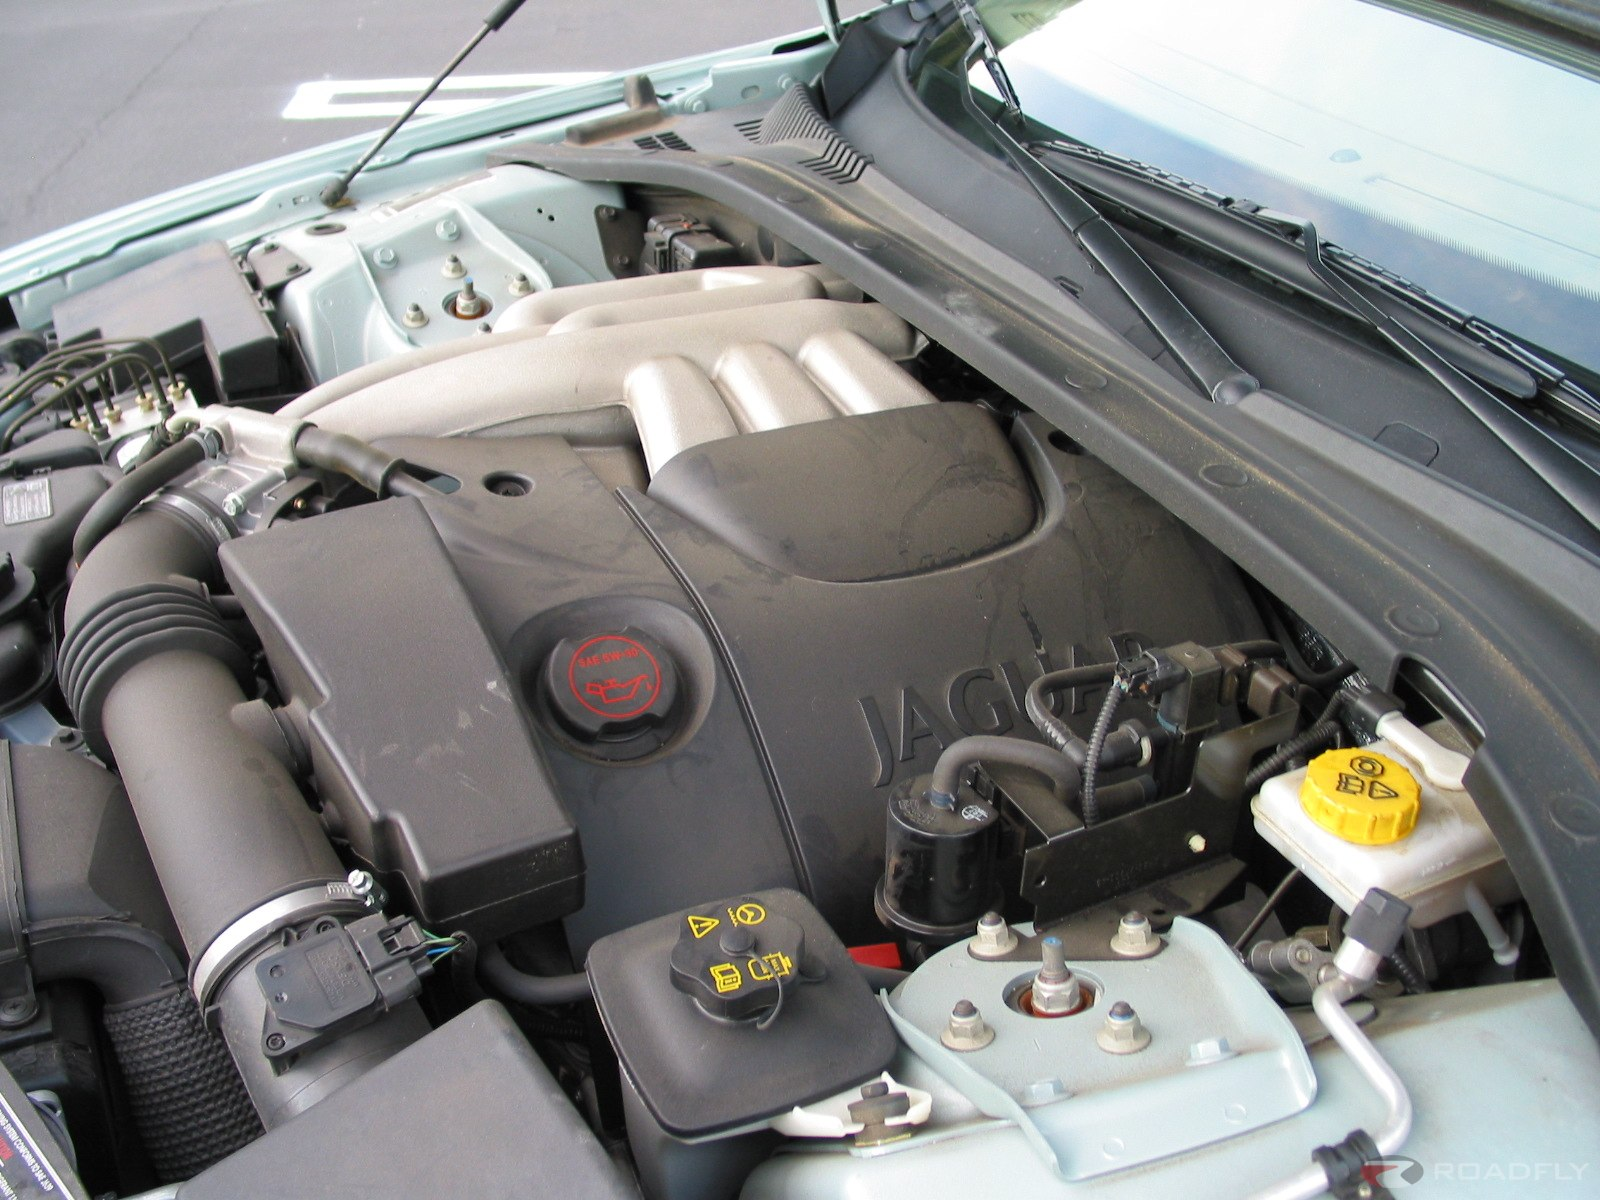 JAGUAR S-TYPE engine